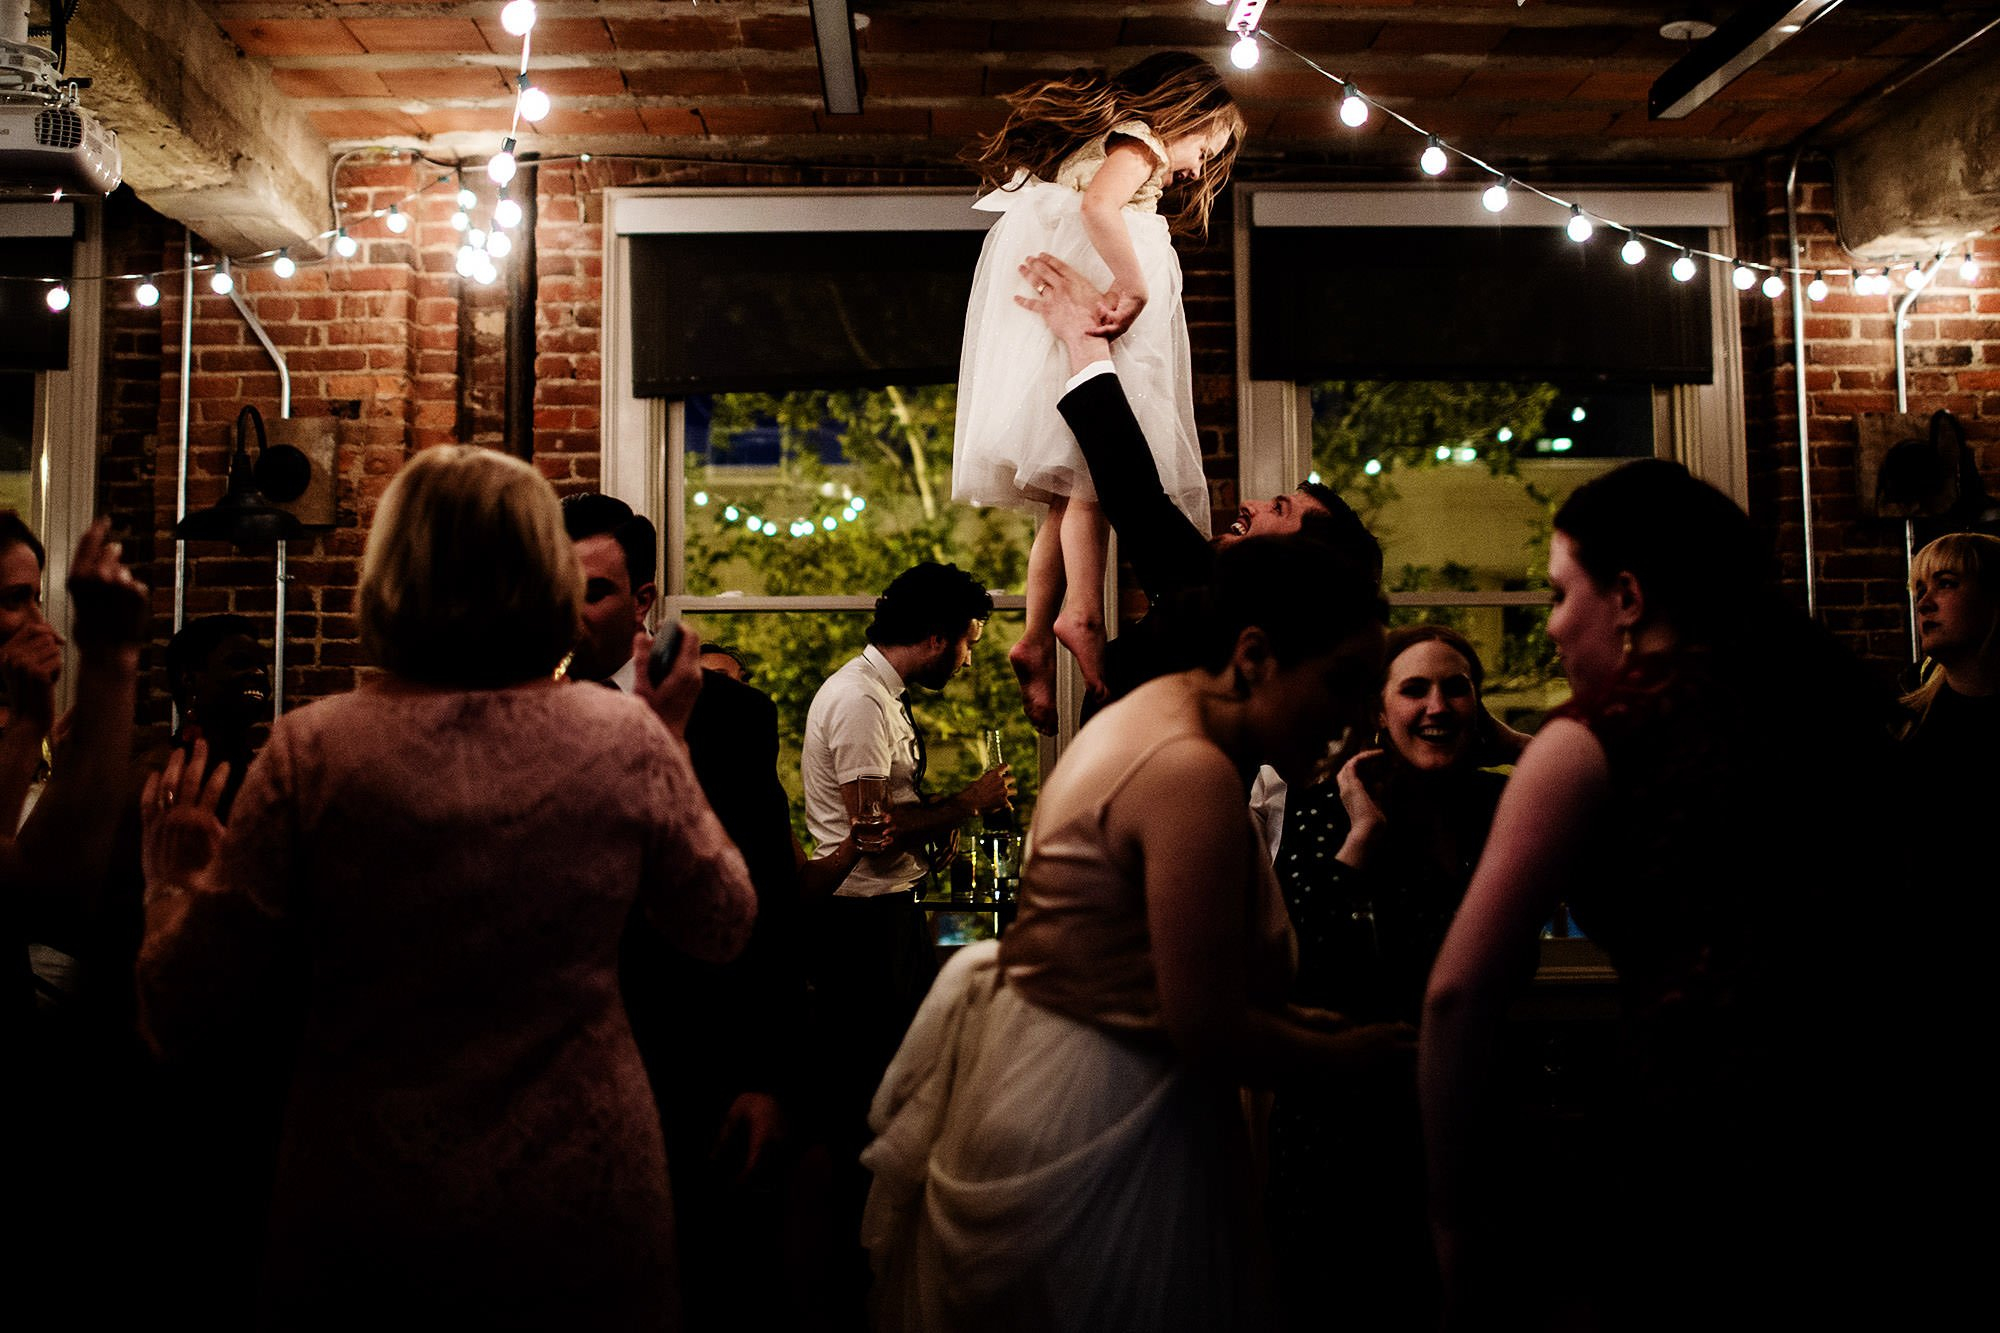 Loft at 600 F Wedding  I  Guests dance during the wedding reception in Washington, DC.